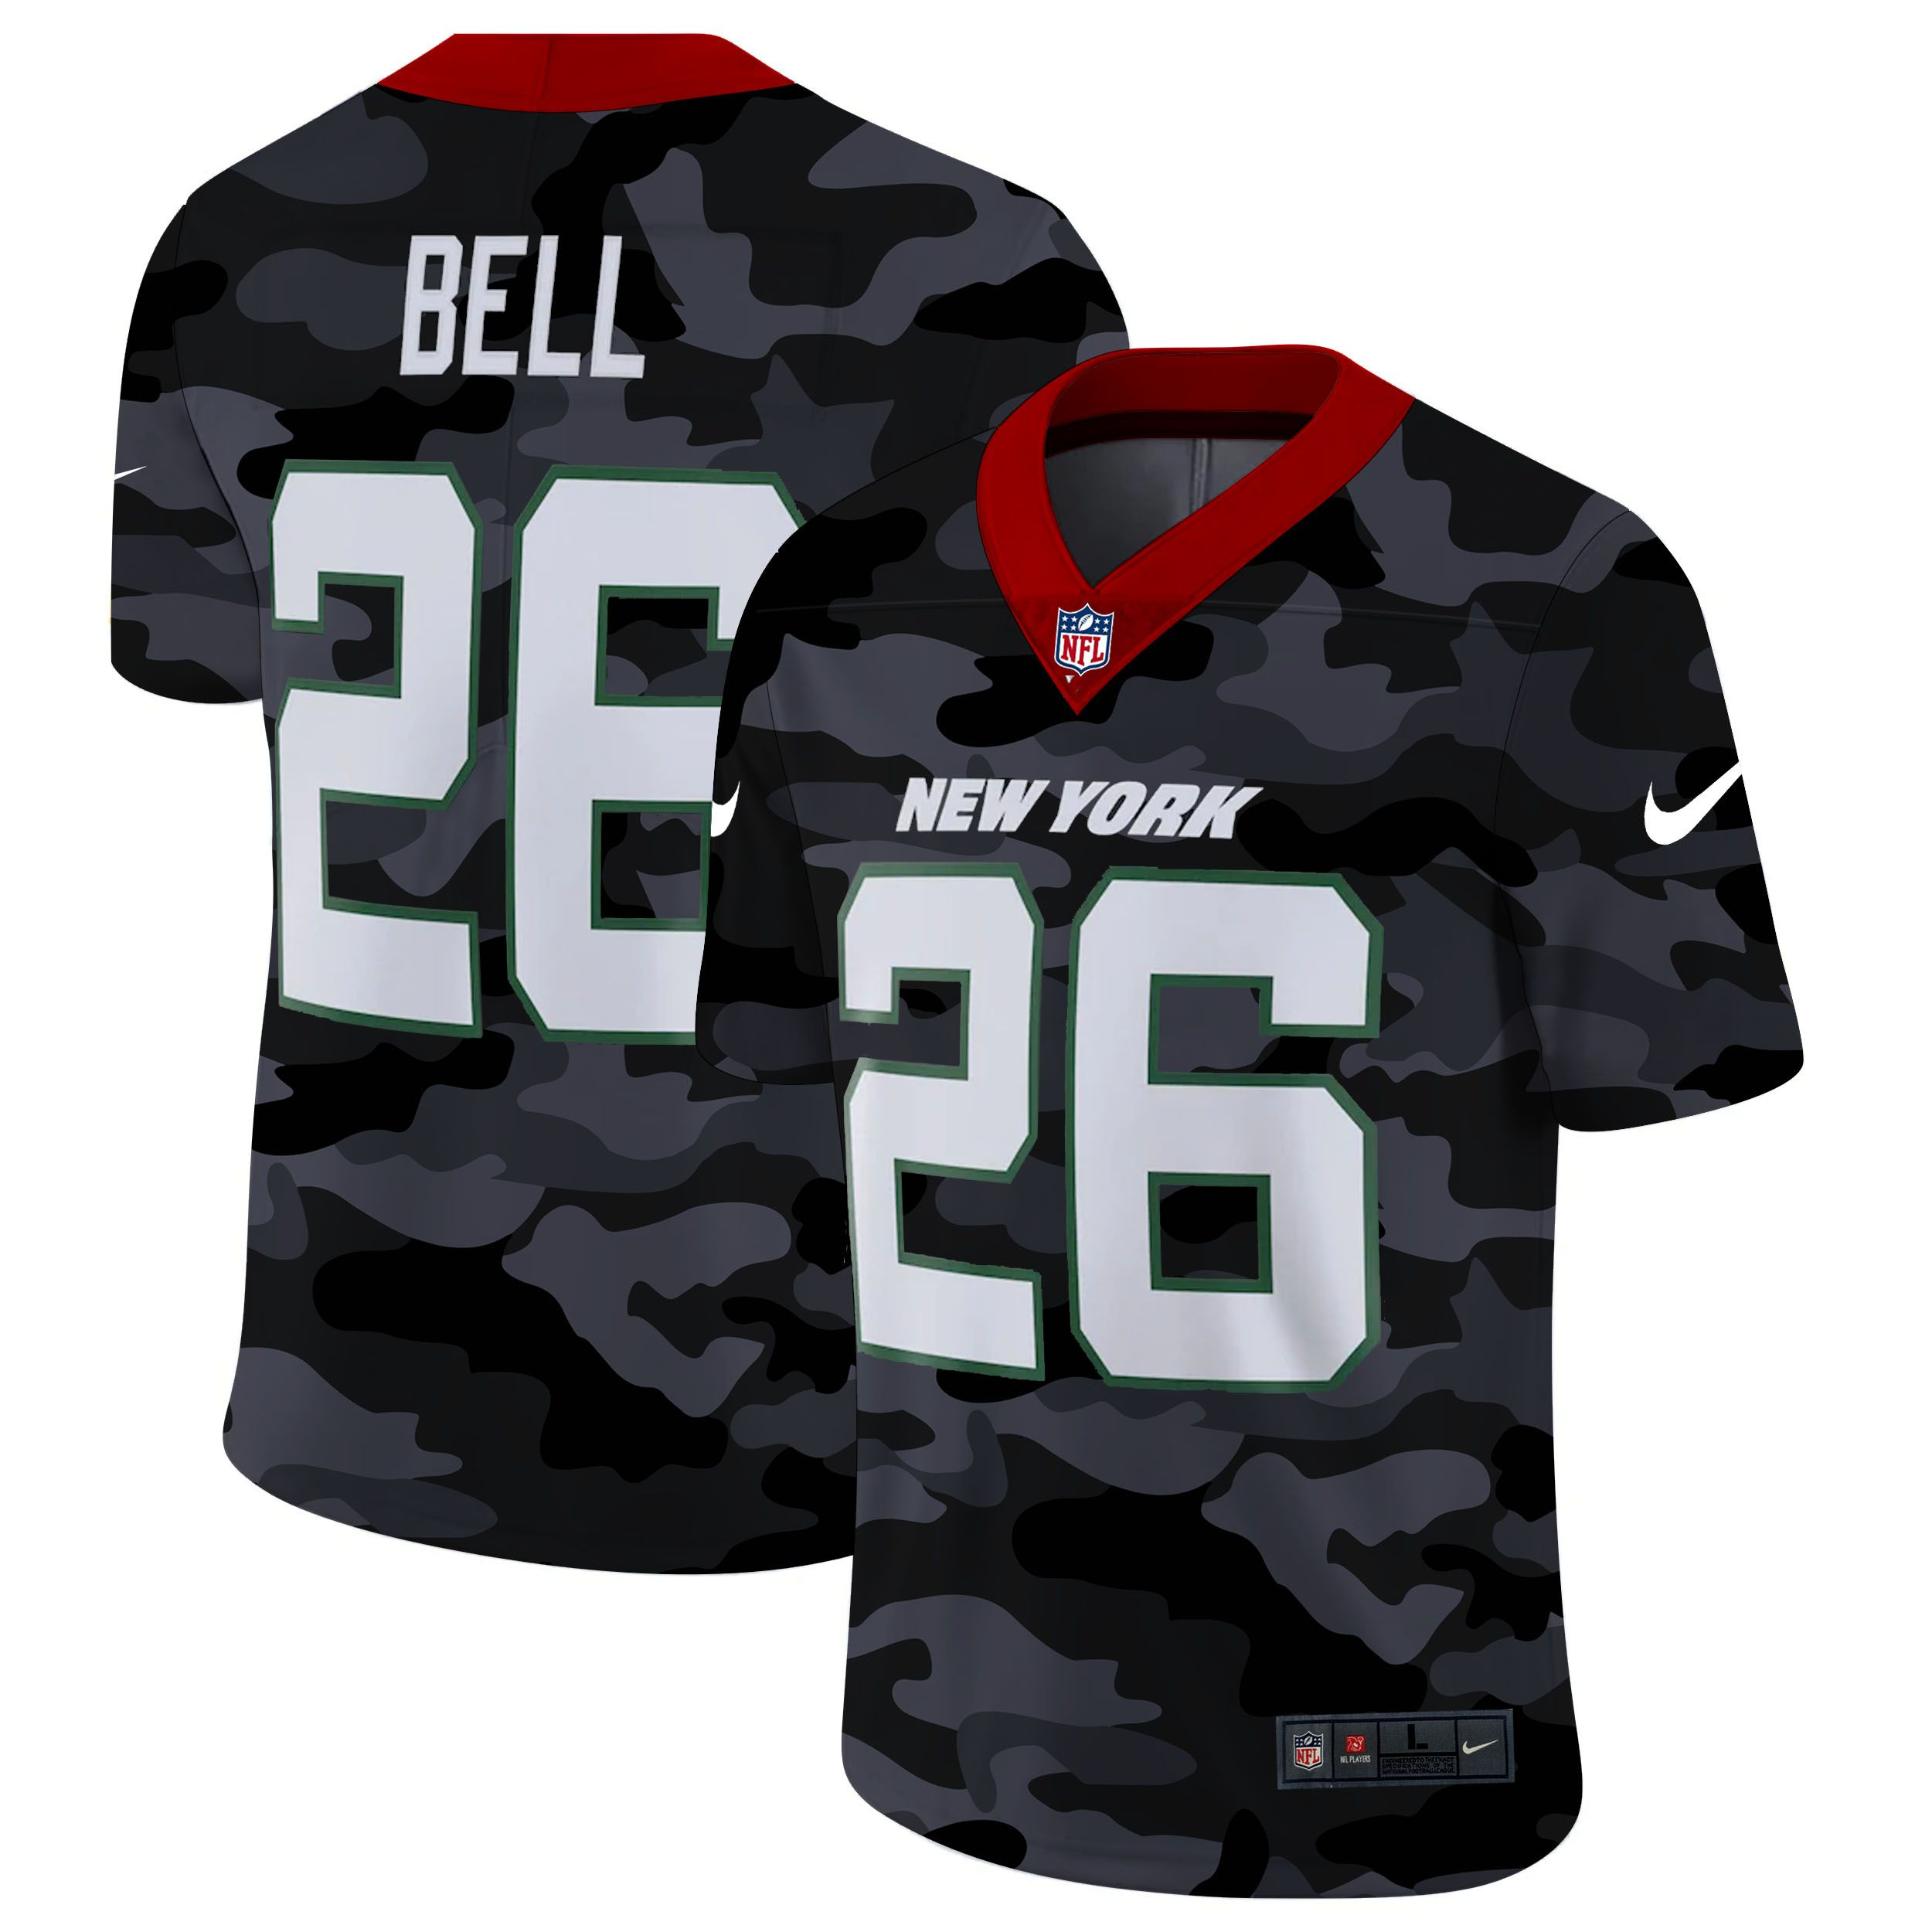 Wholesale Men New York Jets 26 Bell 2020 Nike Camo Salute to Service Limited NFL Jerseys